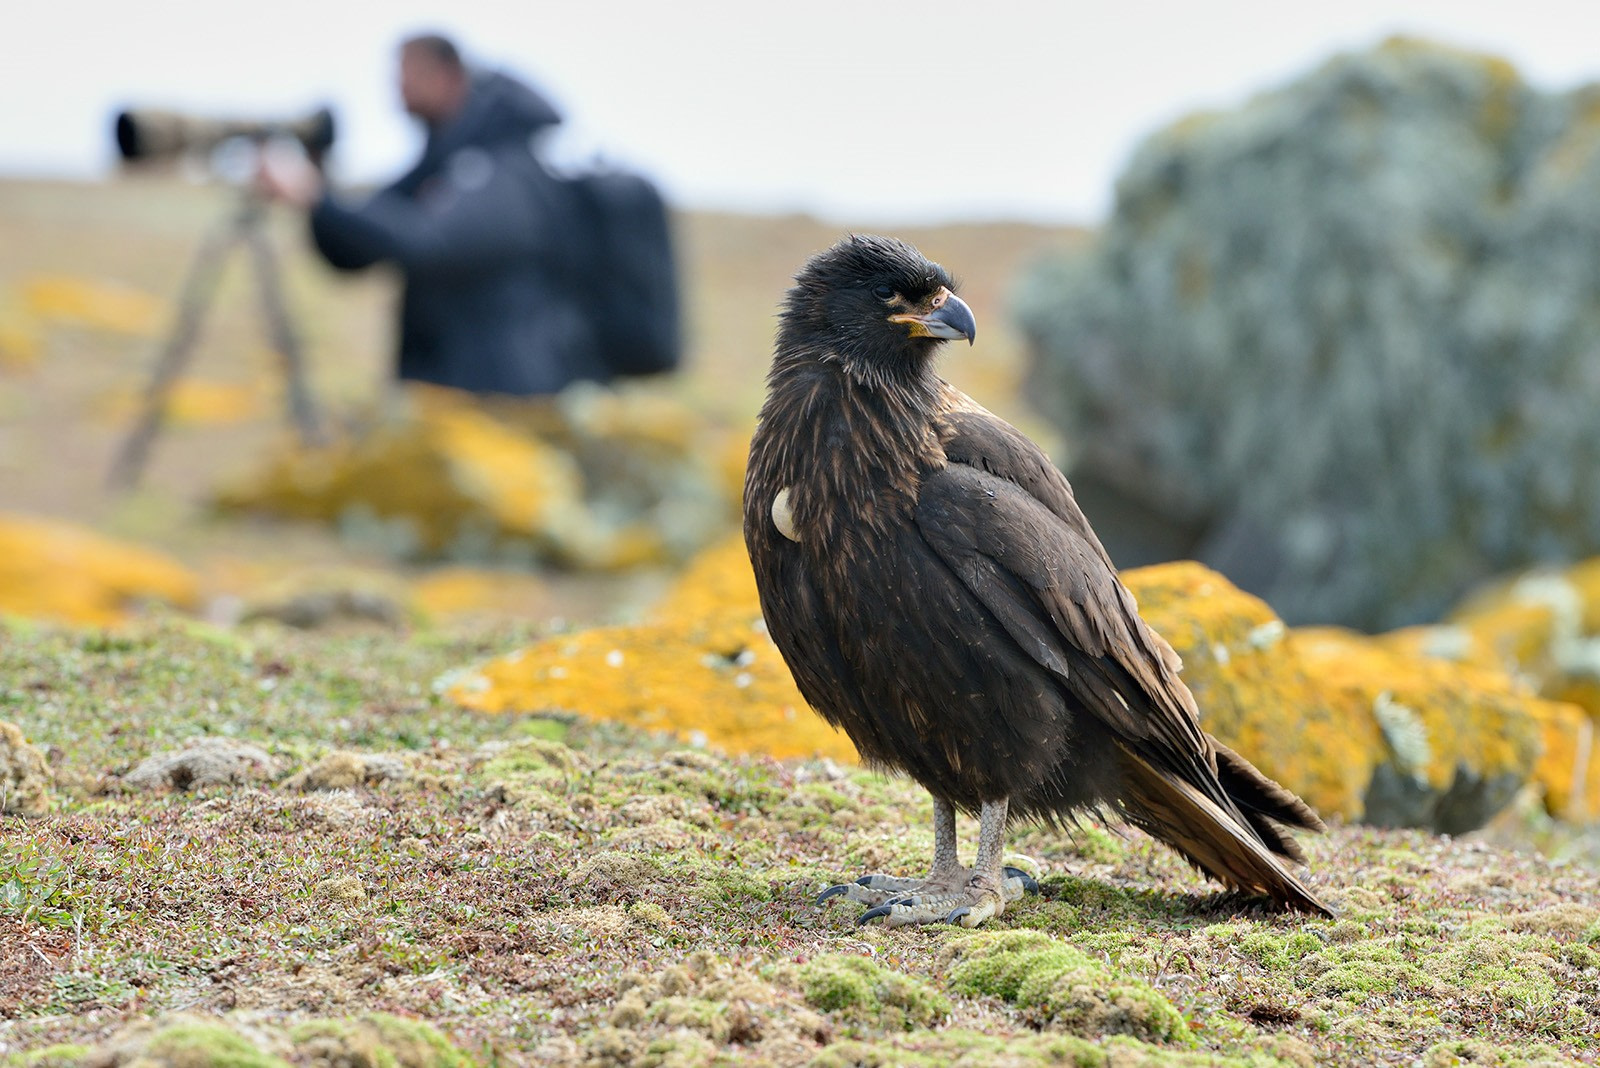 Flora and fauna of the Falkland Islands